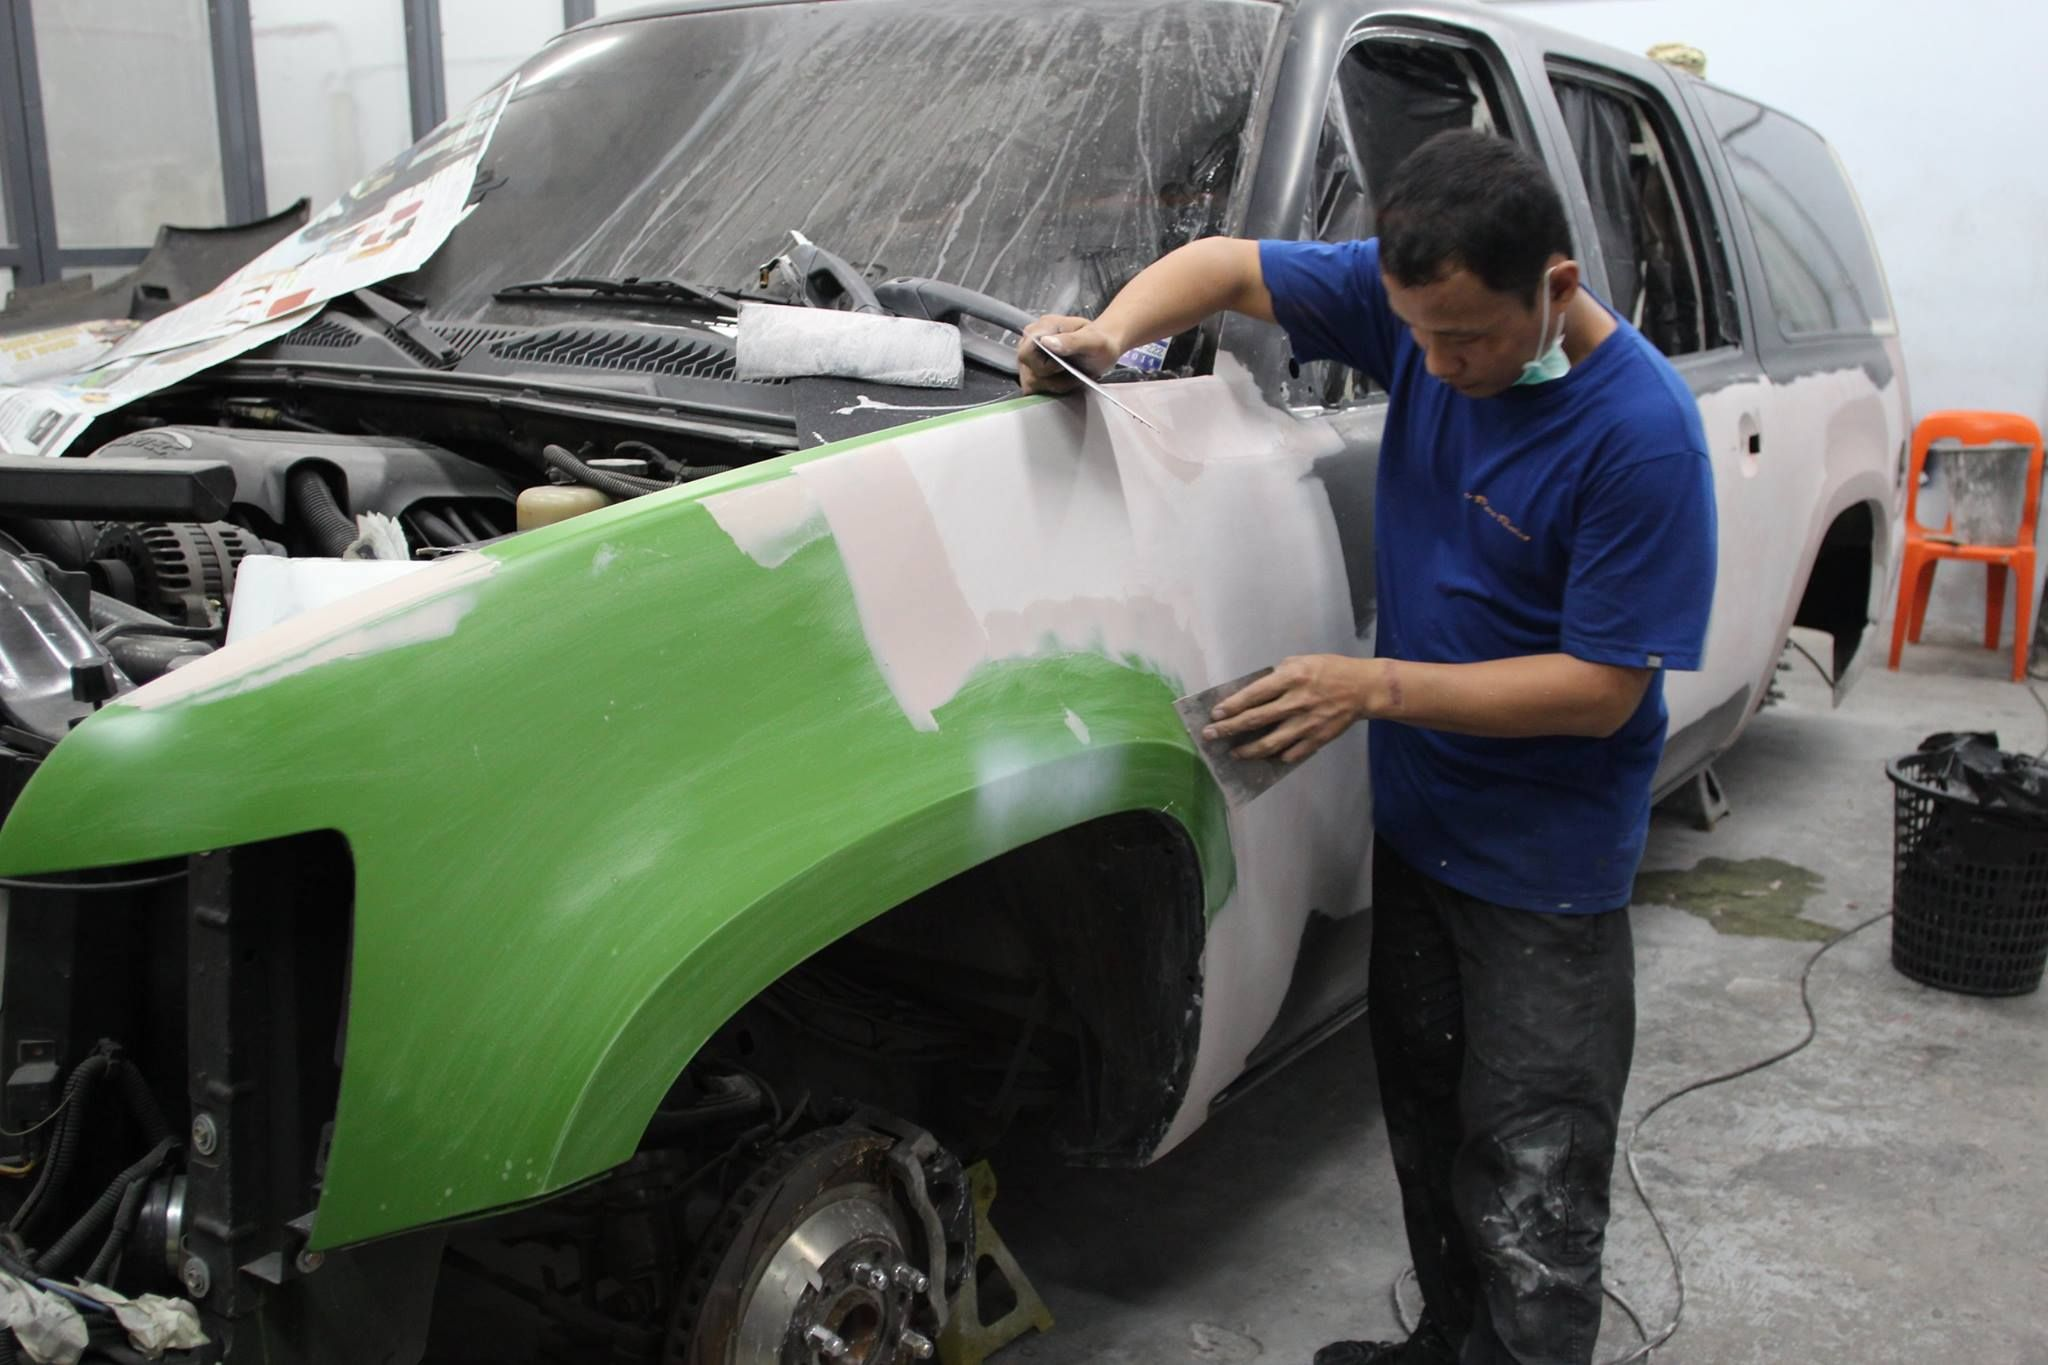 Final touches on our facelifted chevy suburban - Dec. 15, 2014 #carpornracing #suburban #chevy #facelift #carcustomization #partsdistributor